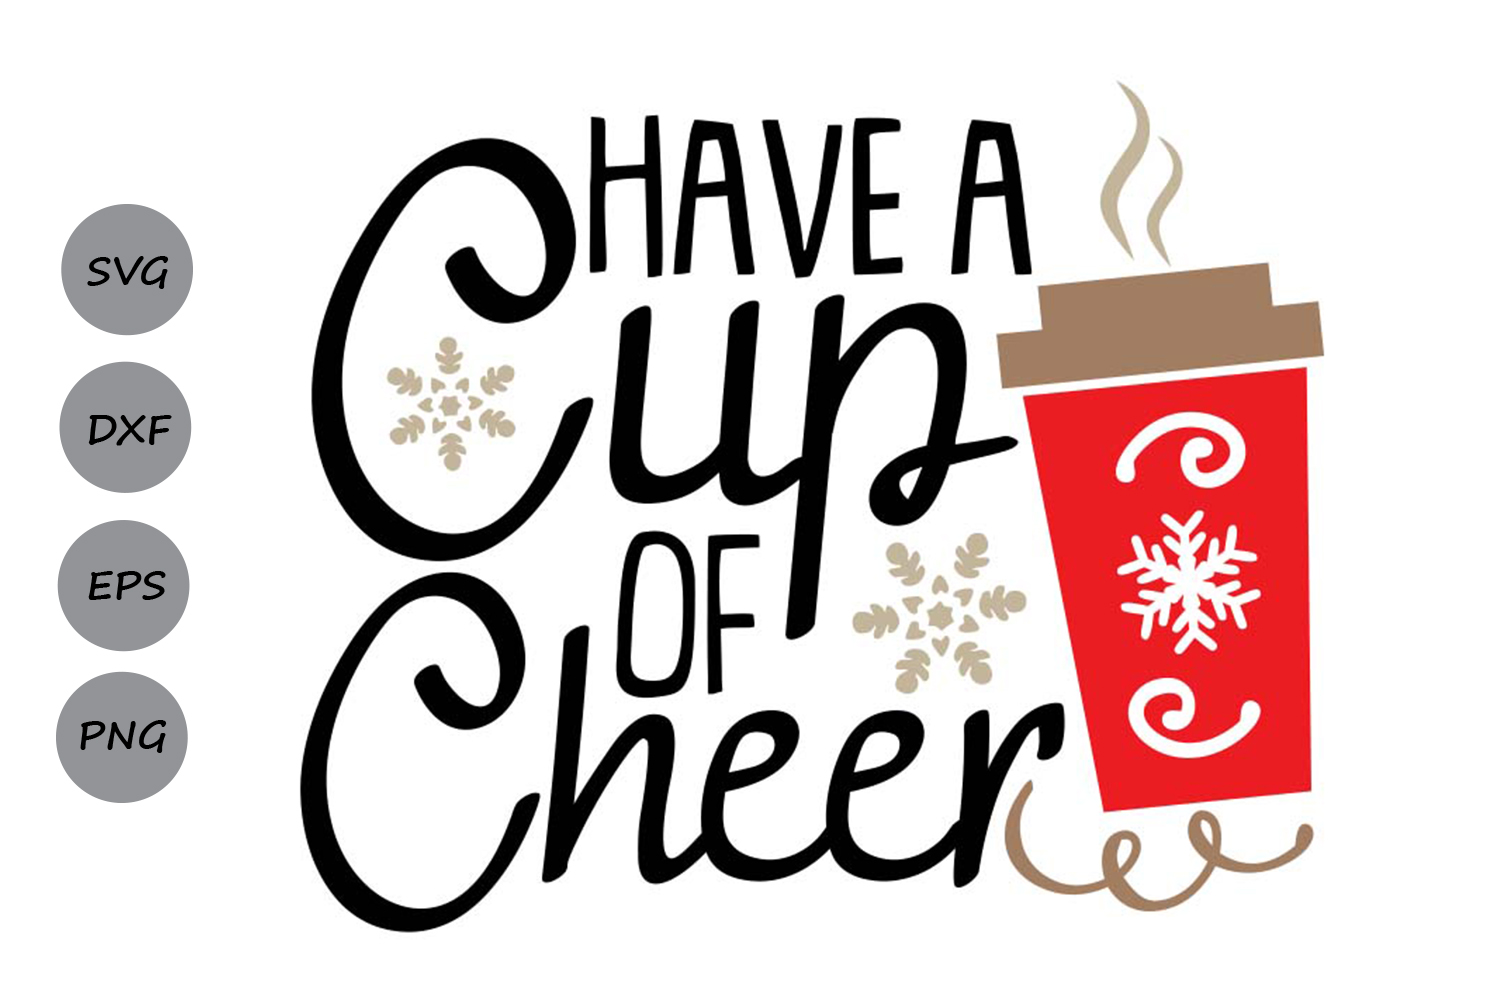 Have A Cup Of Cheer Svg, Christmas Svg, Coffee Svg, Winter. example image 1